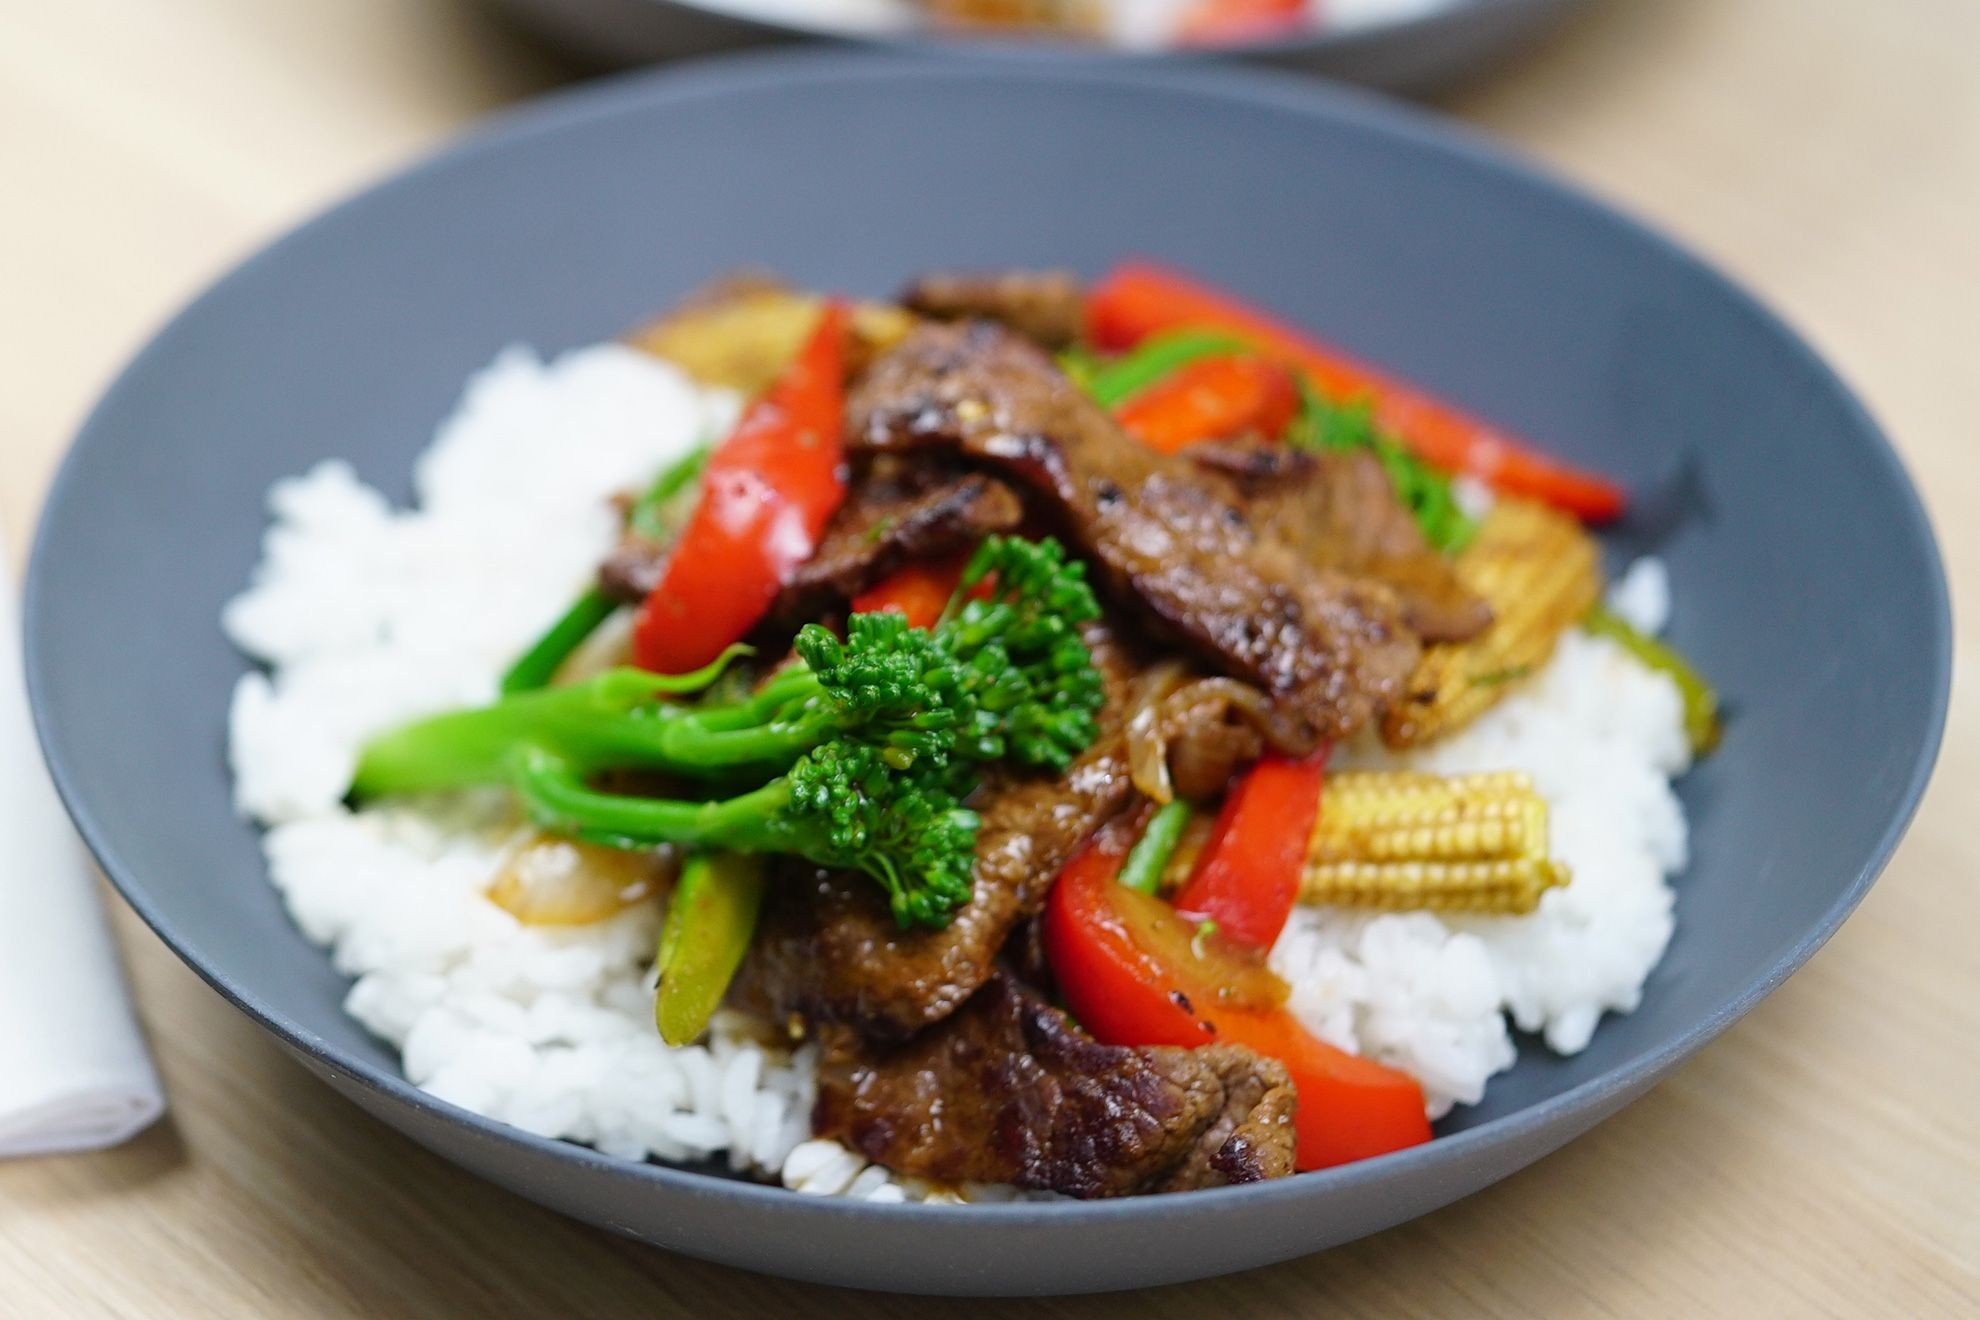 Sauteed Beef with Vegetables